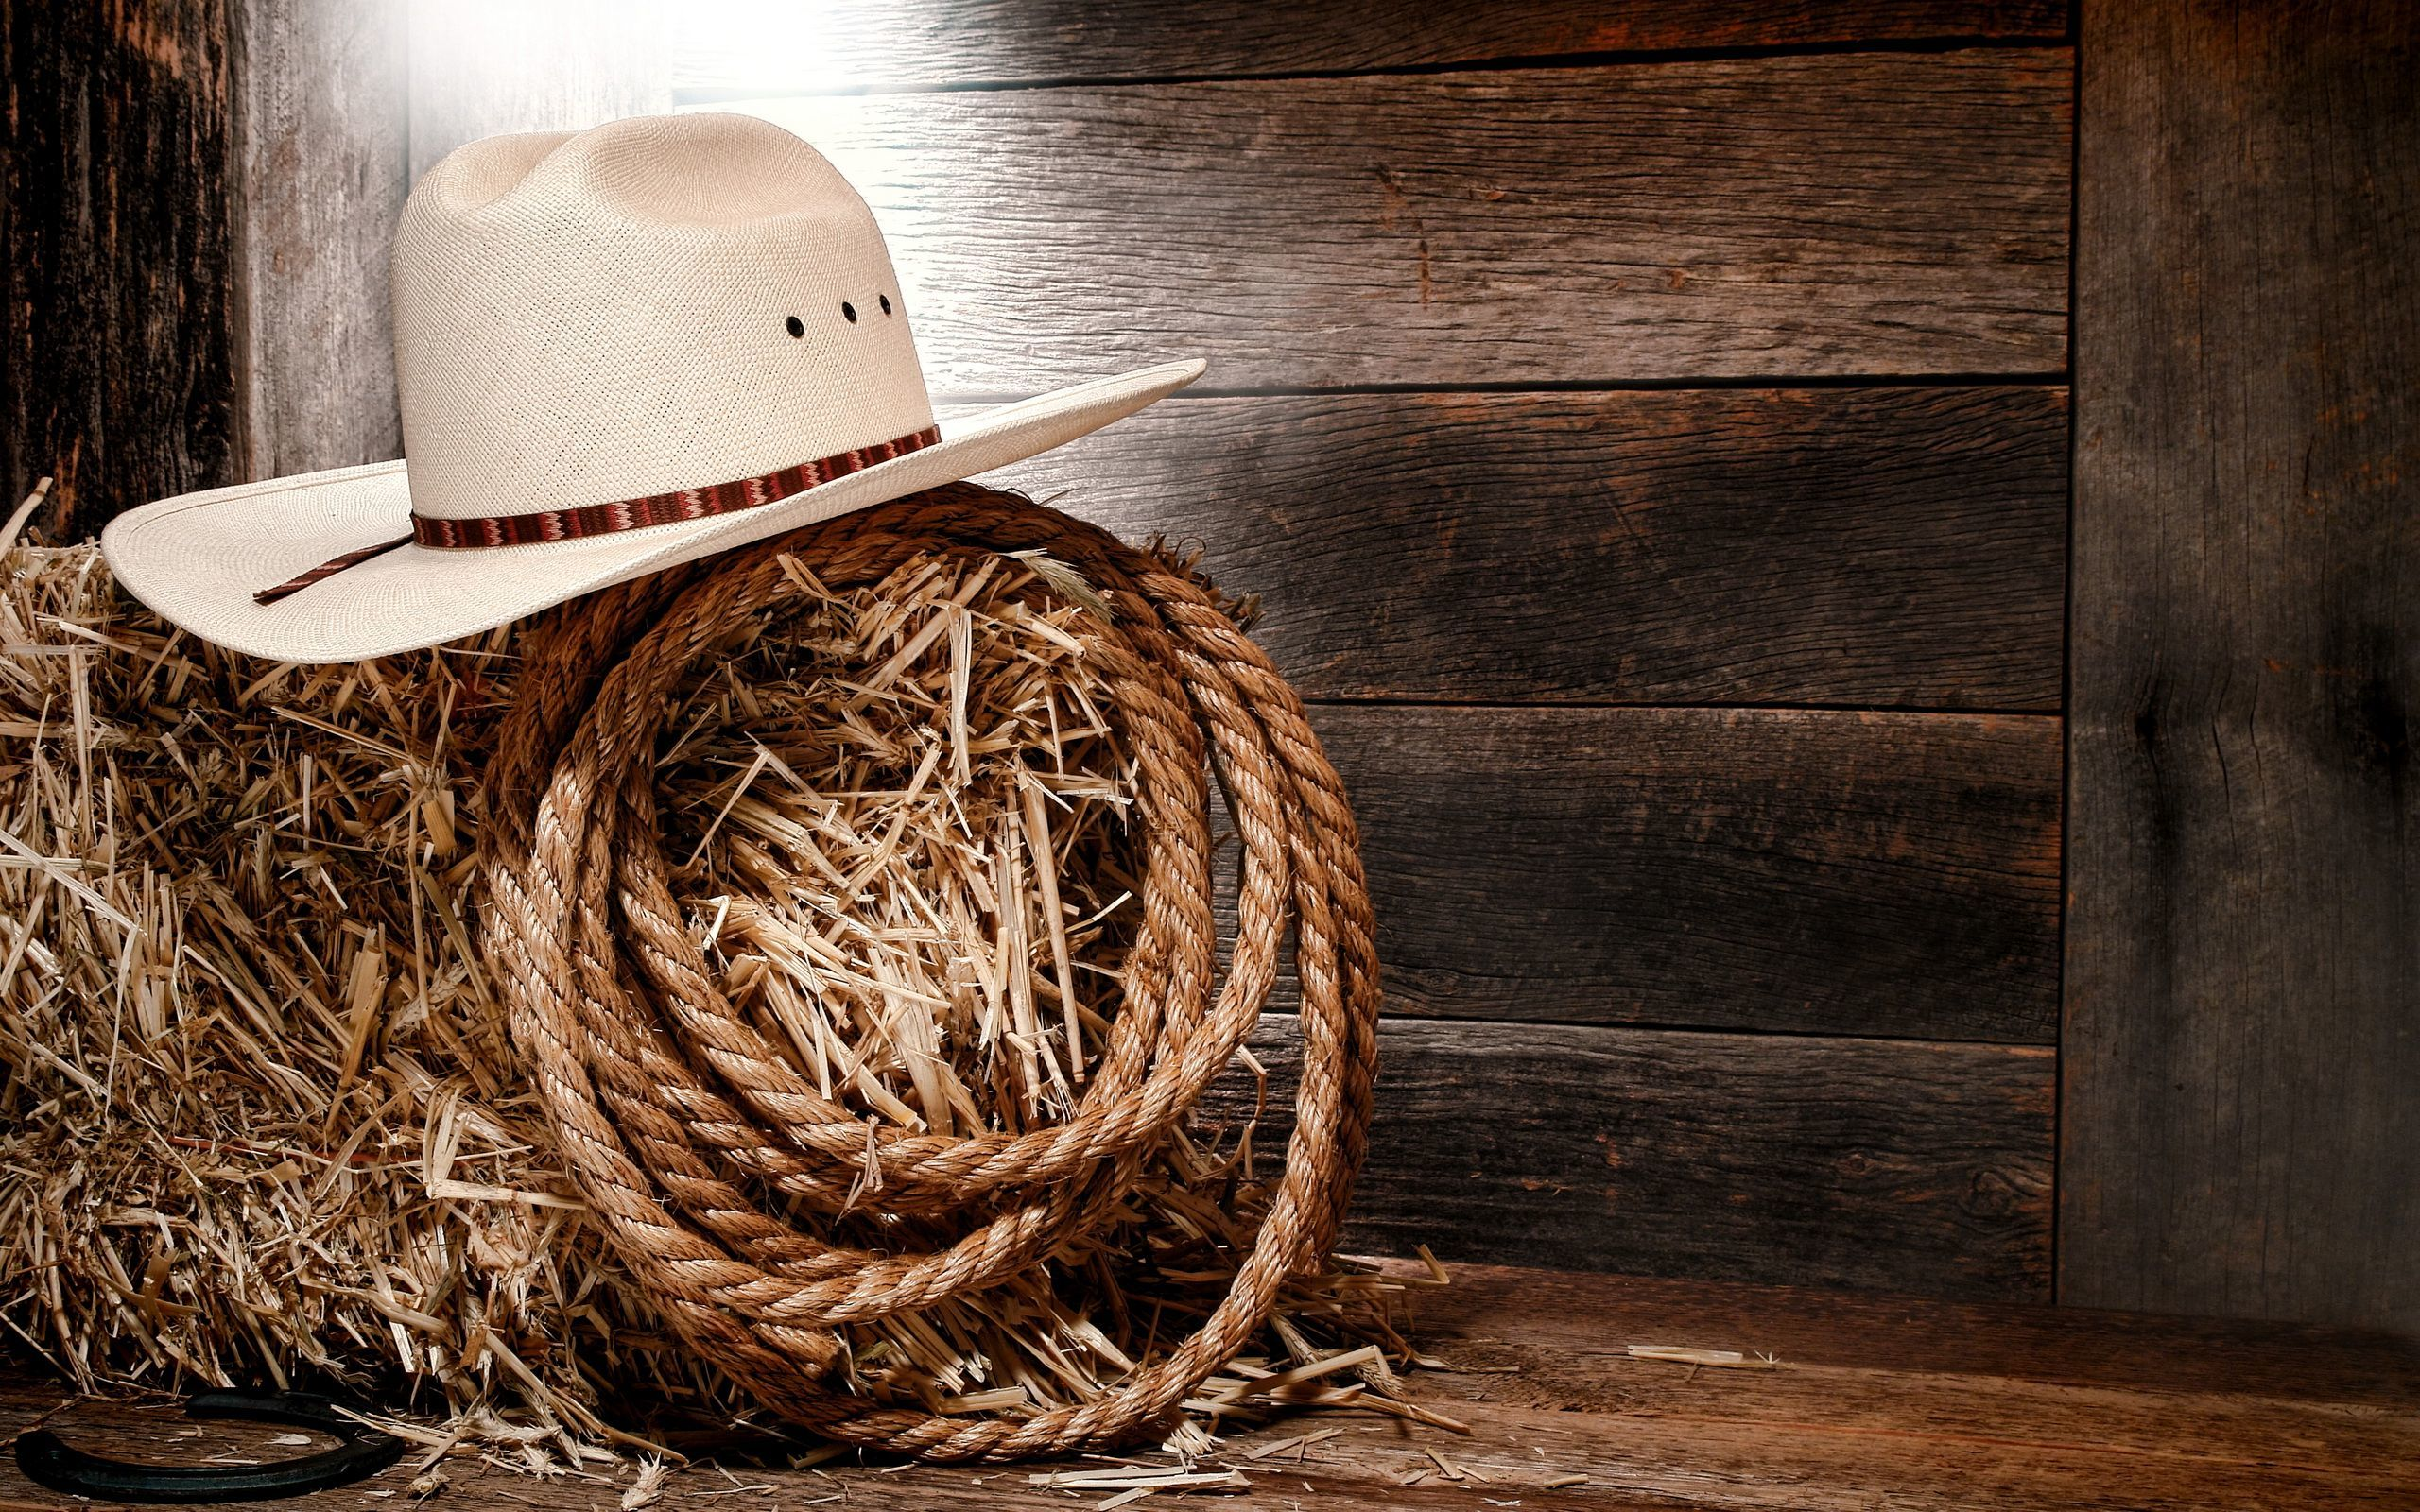 Western Straw Rope Presentation Backgrounds for Powerpoint 2560x1600